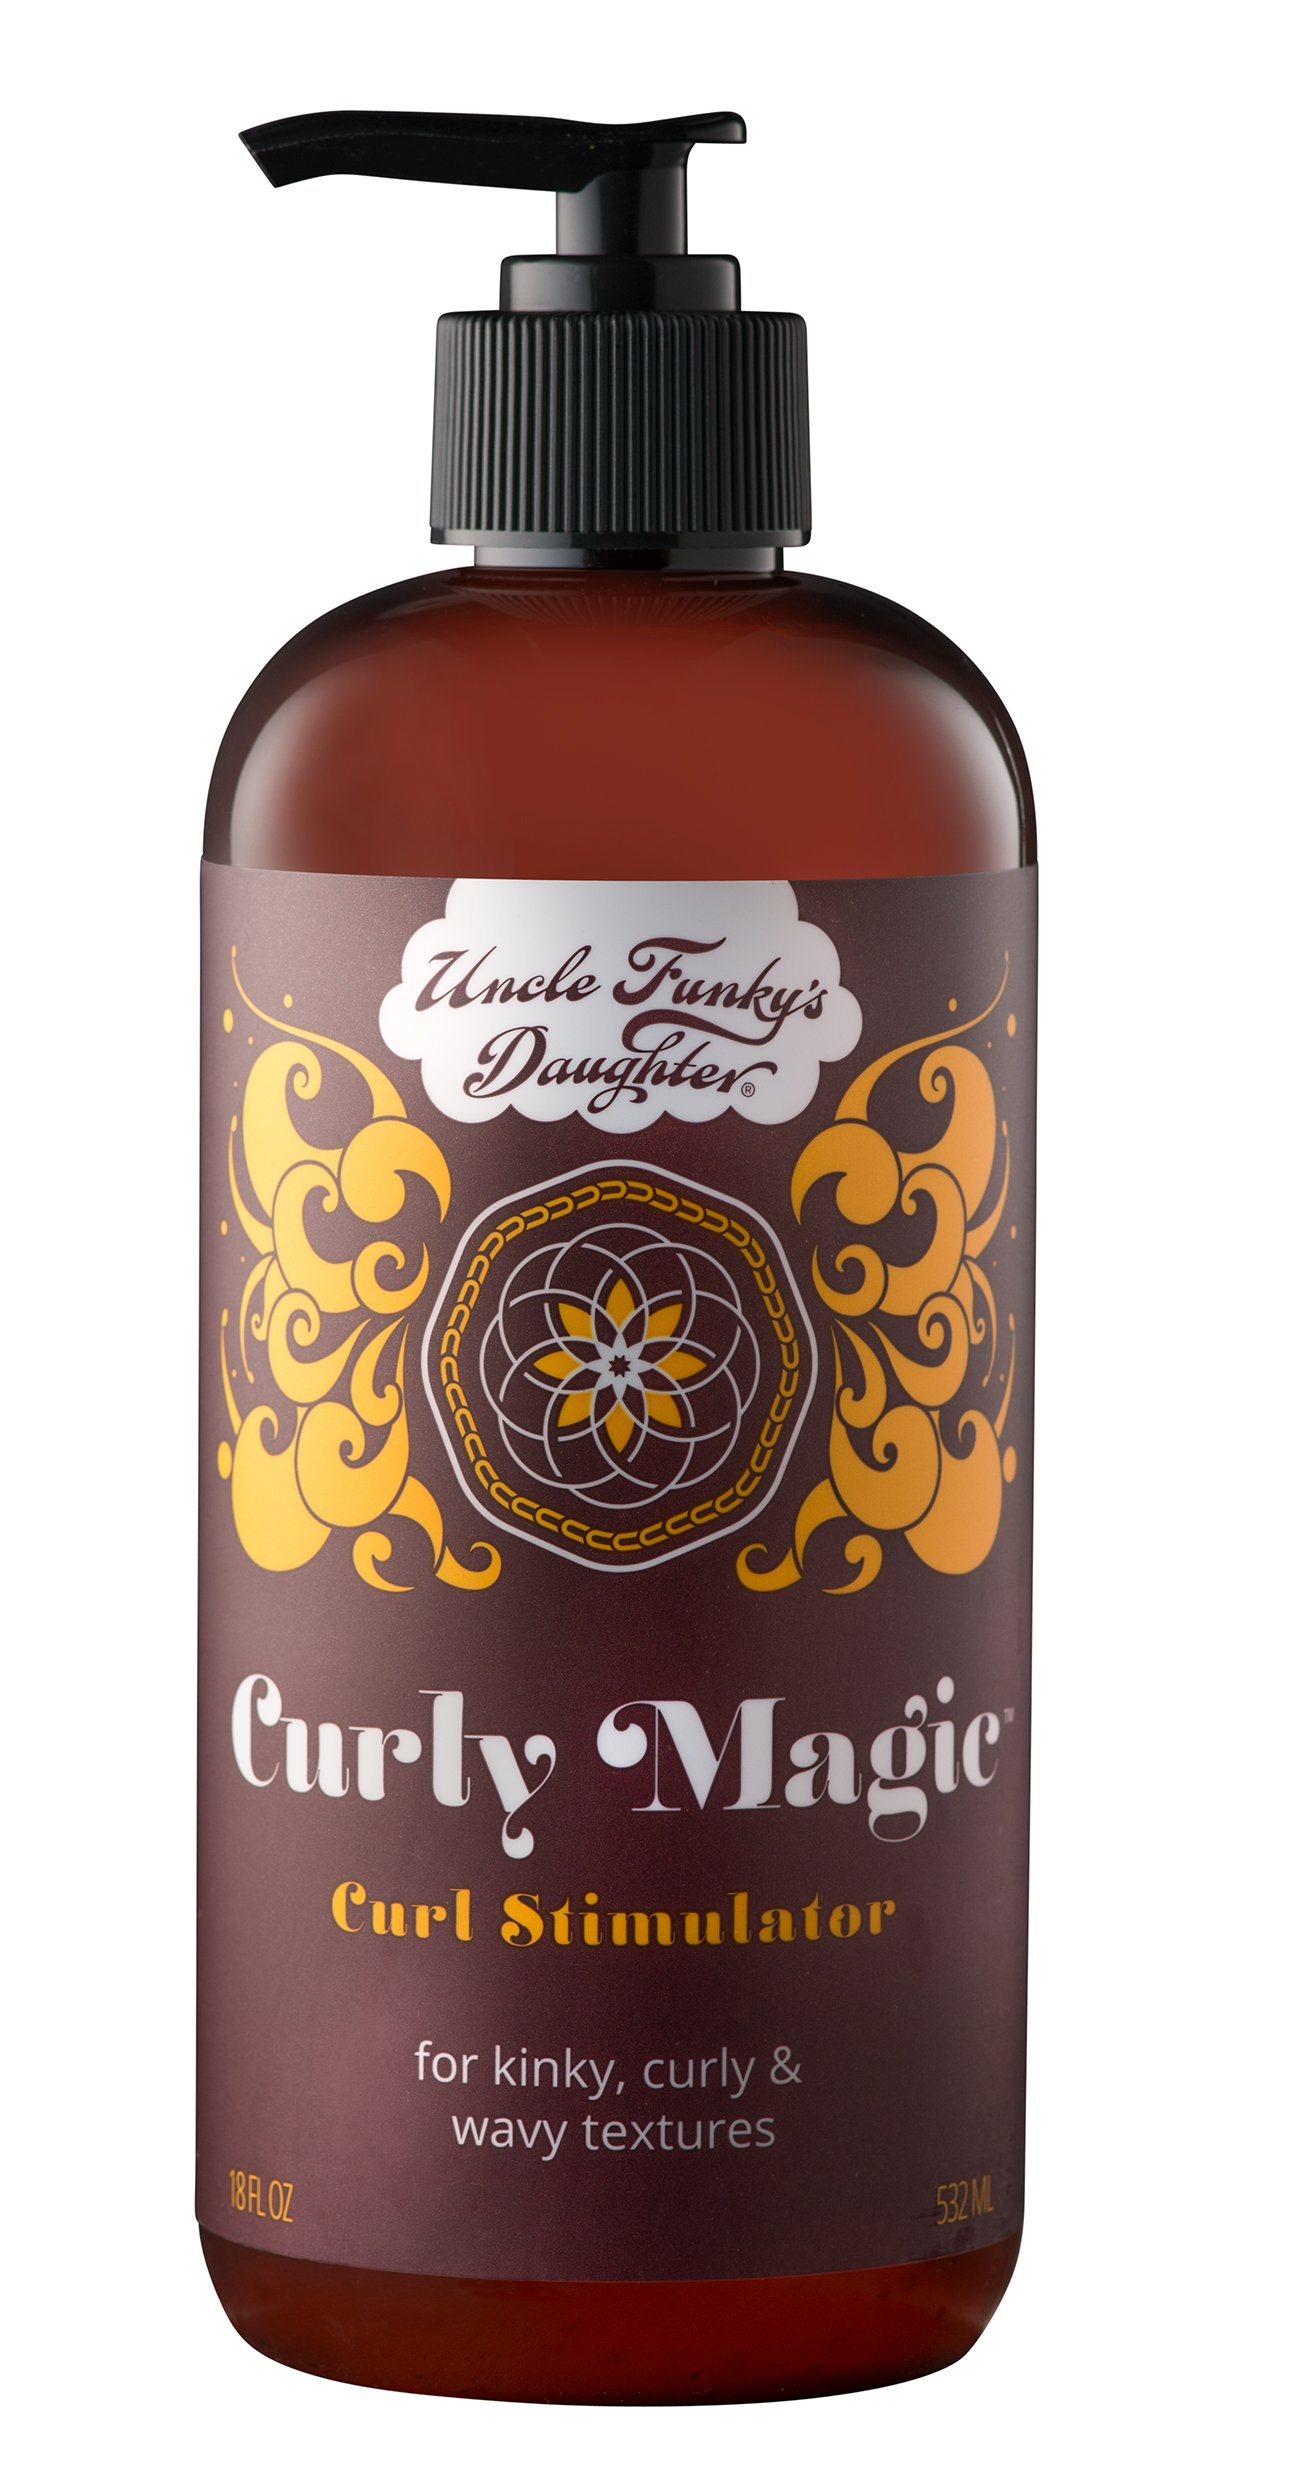 Curly Magic Curl Stimulator (18 oz) by Uncle Funky's Daughter